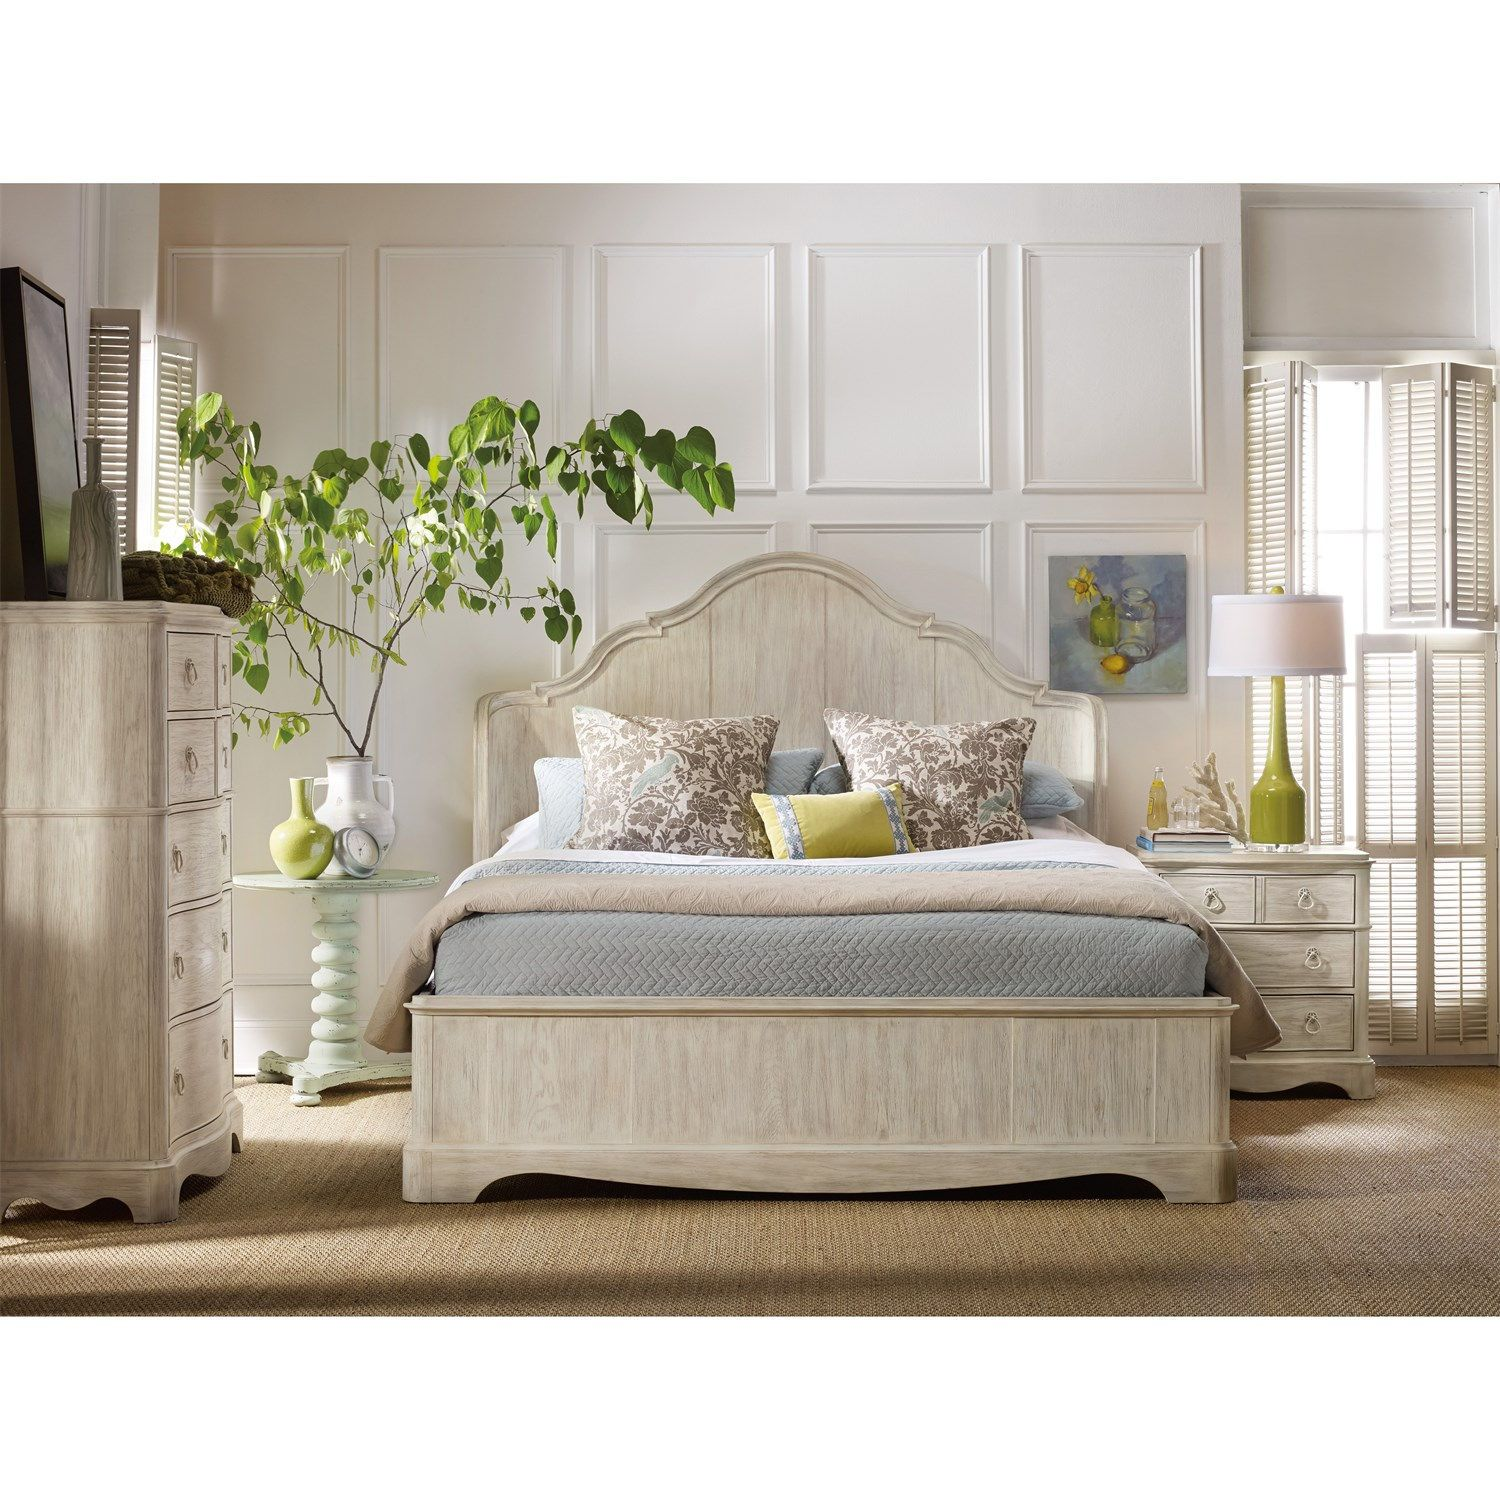 High Quality Hooker Bedroom Furniture Sets For Awesome Bedroom